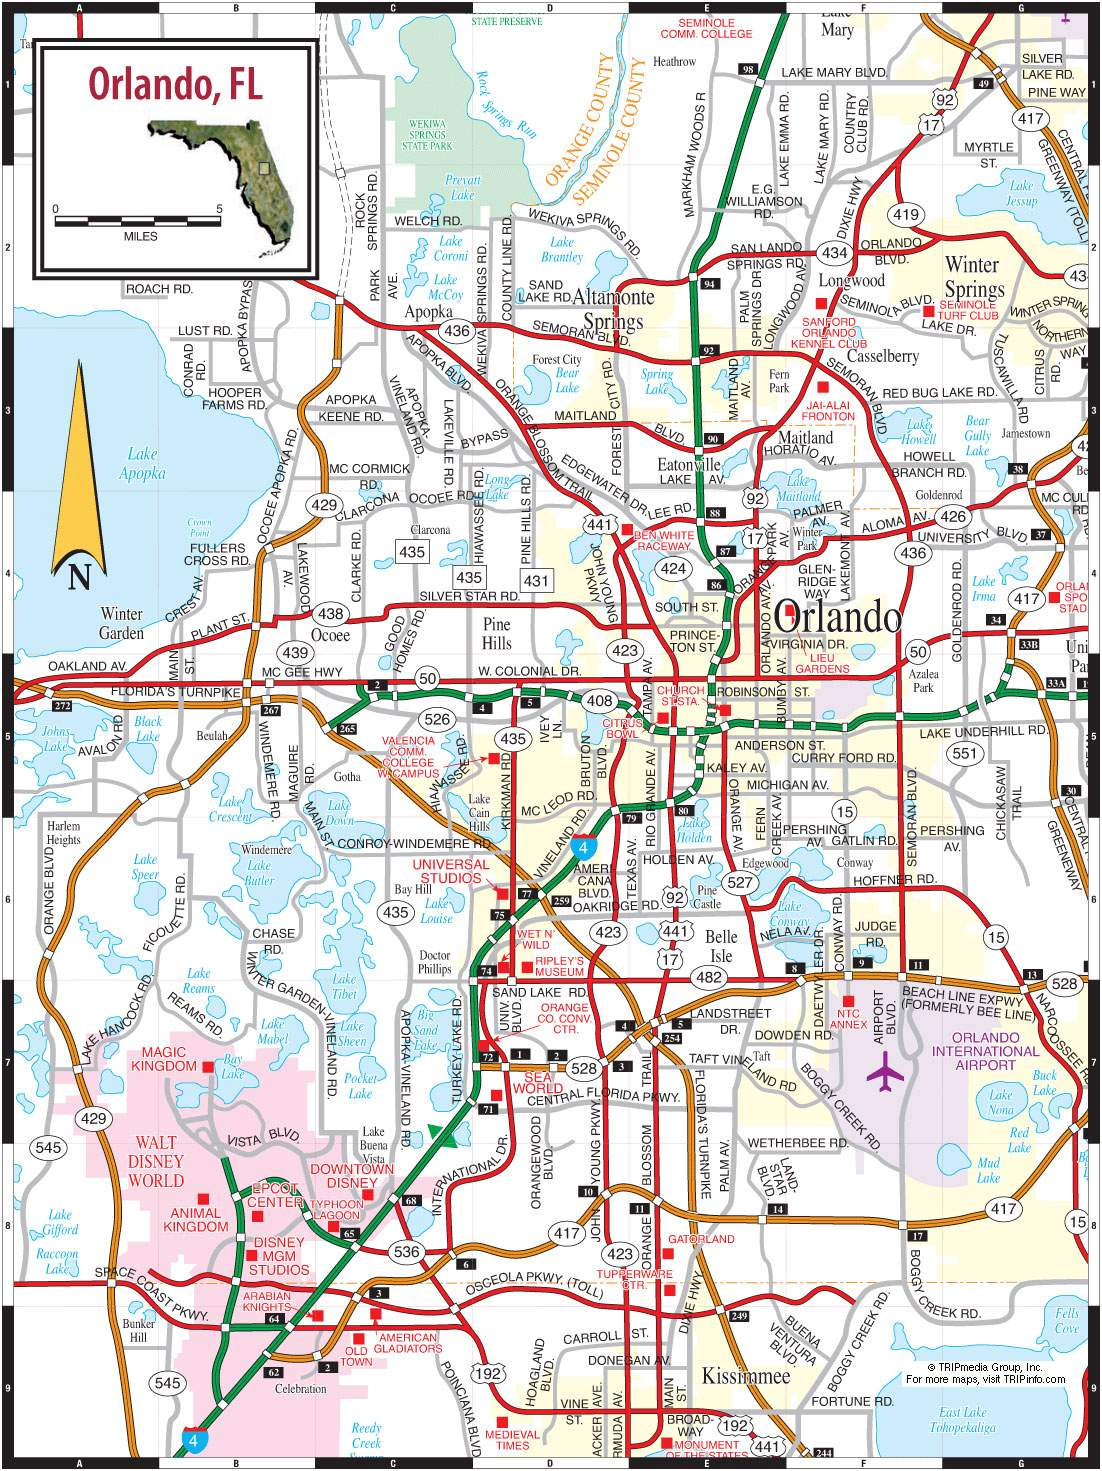 Large Orlando Maps For Free Download And Print | High-Resolution And - Detailed Map Of Orlando Florida